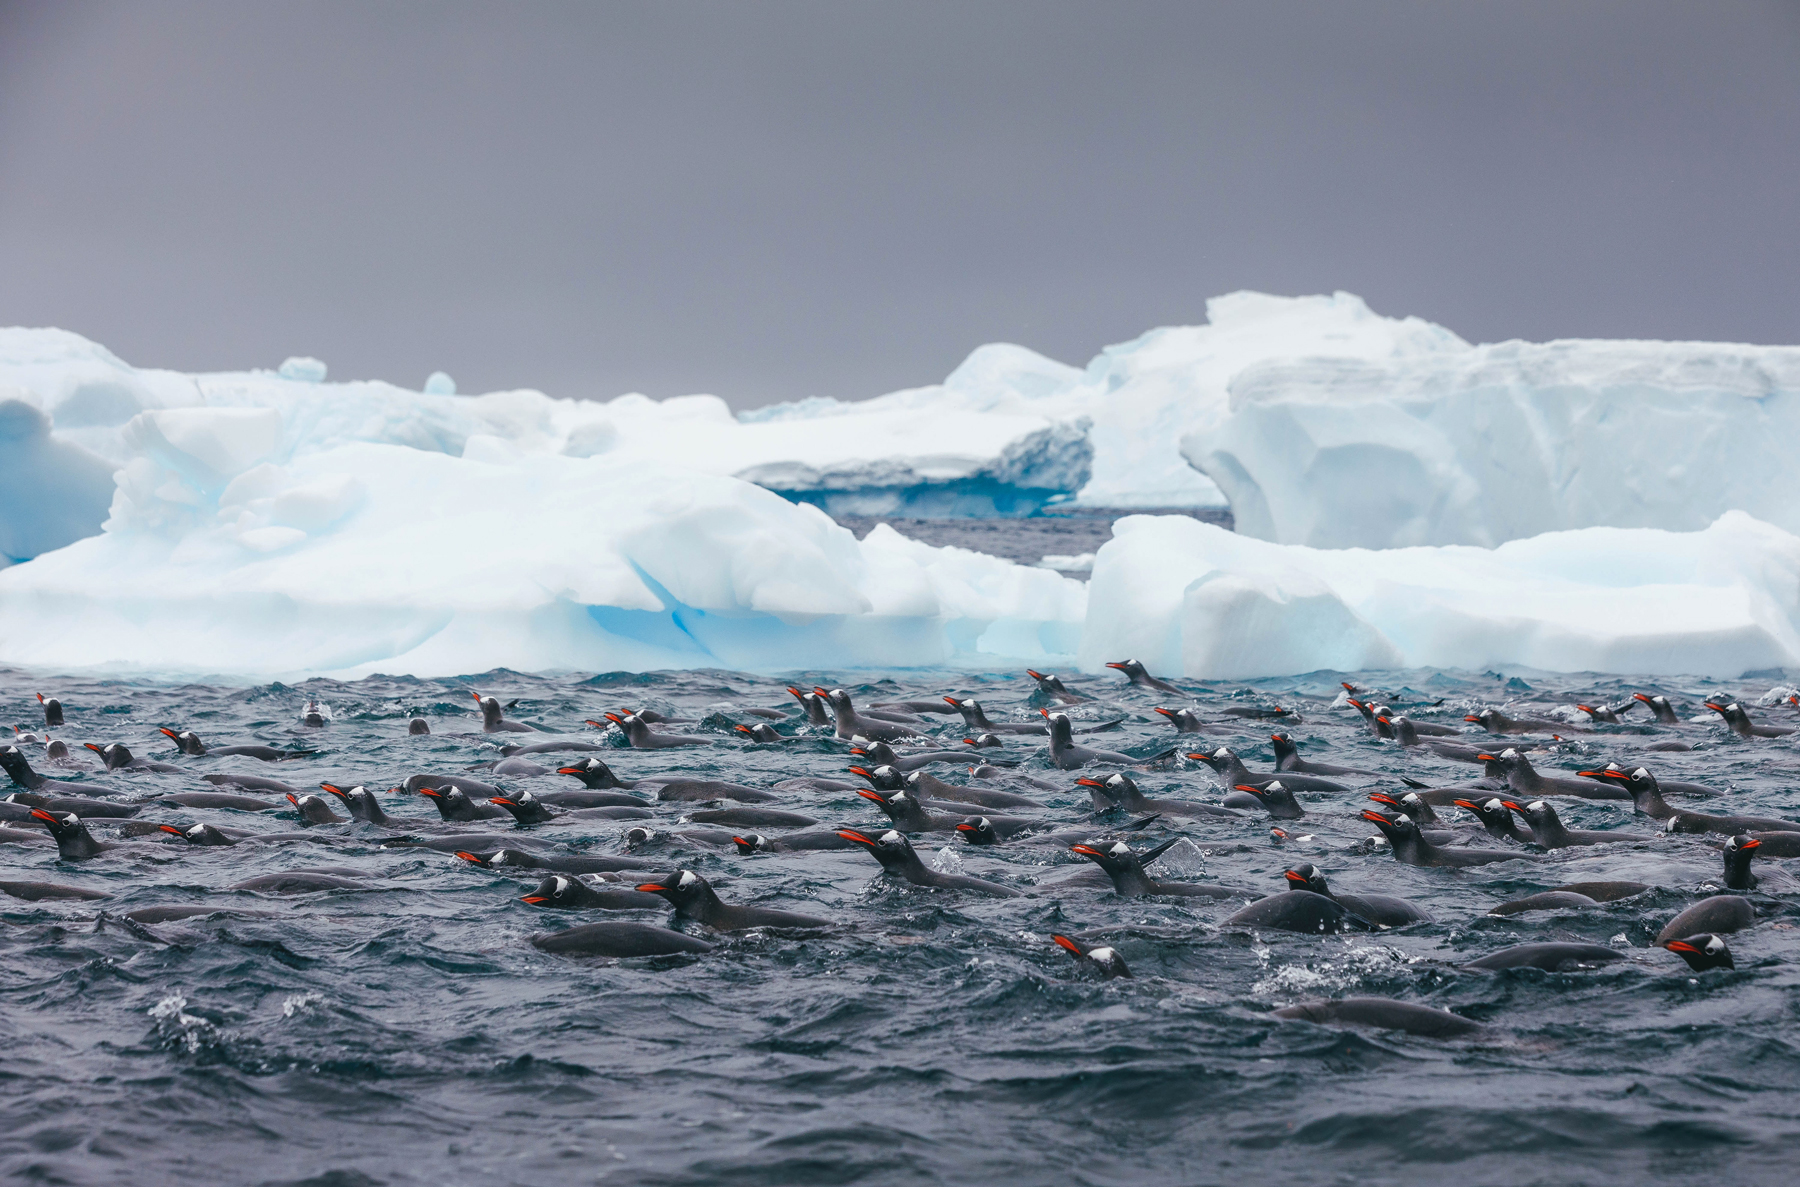 Gentoo penguin near shore. Photo: David Merron